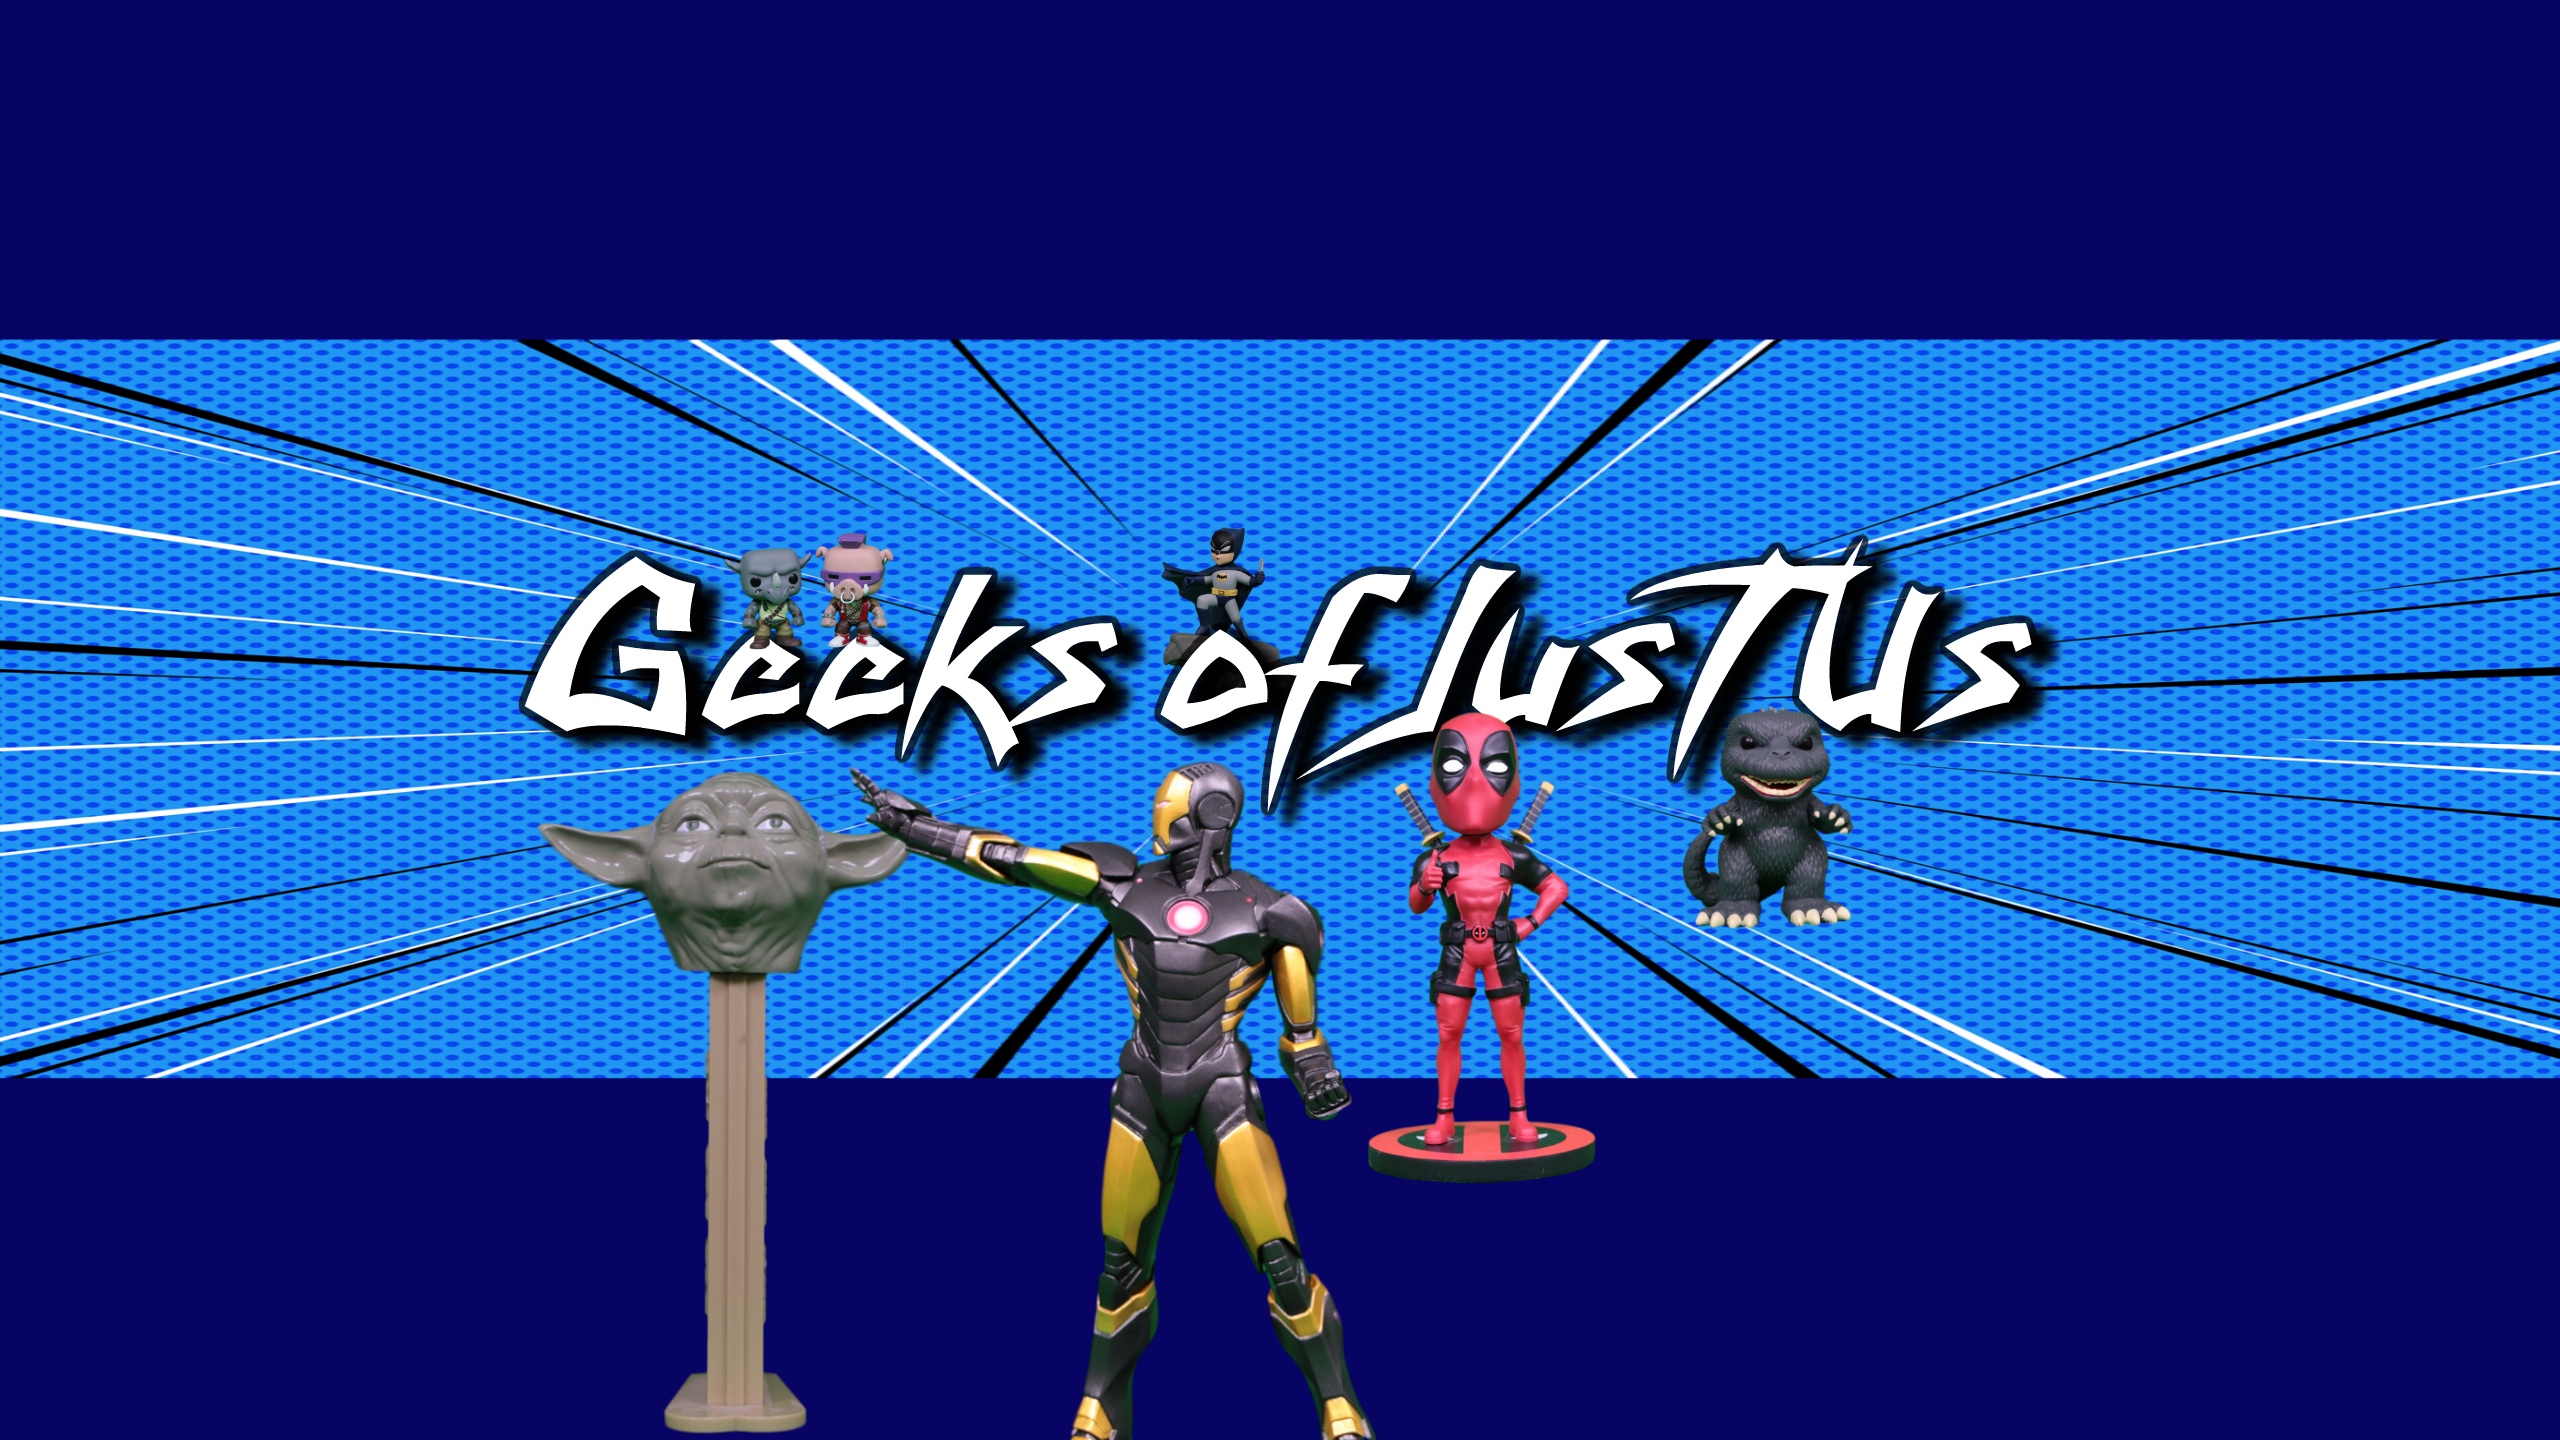 Geeks of Just Us